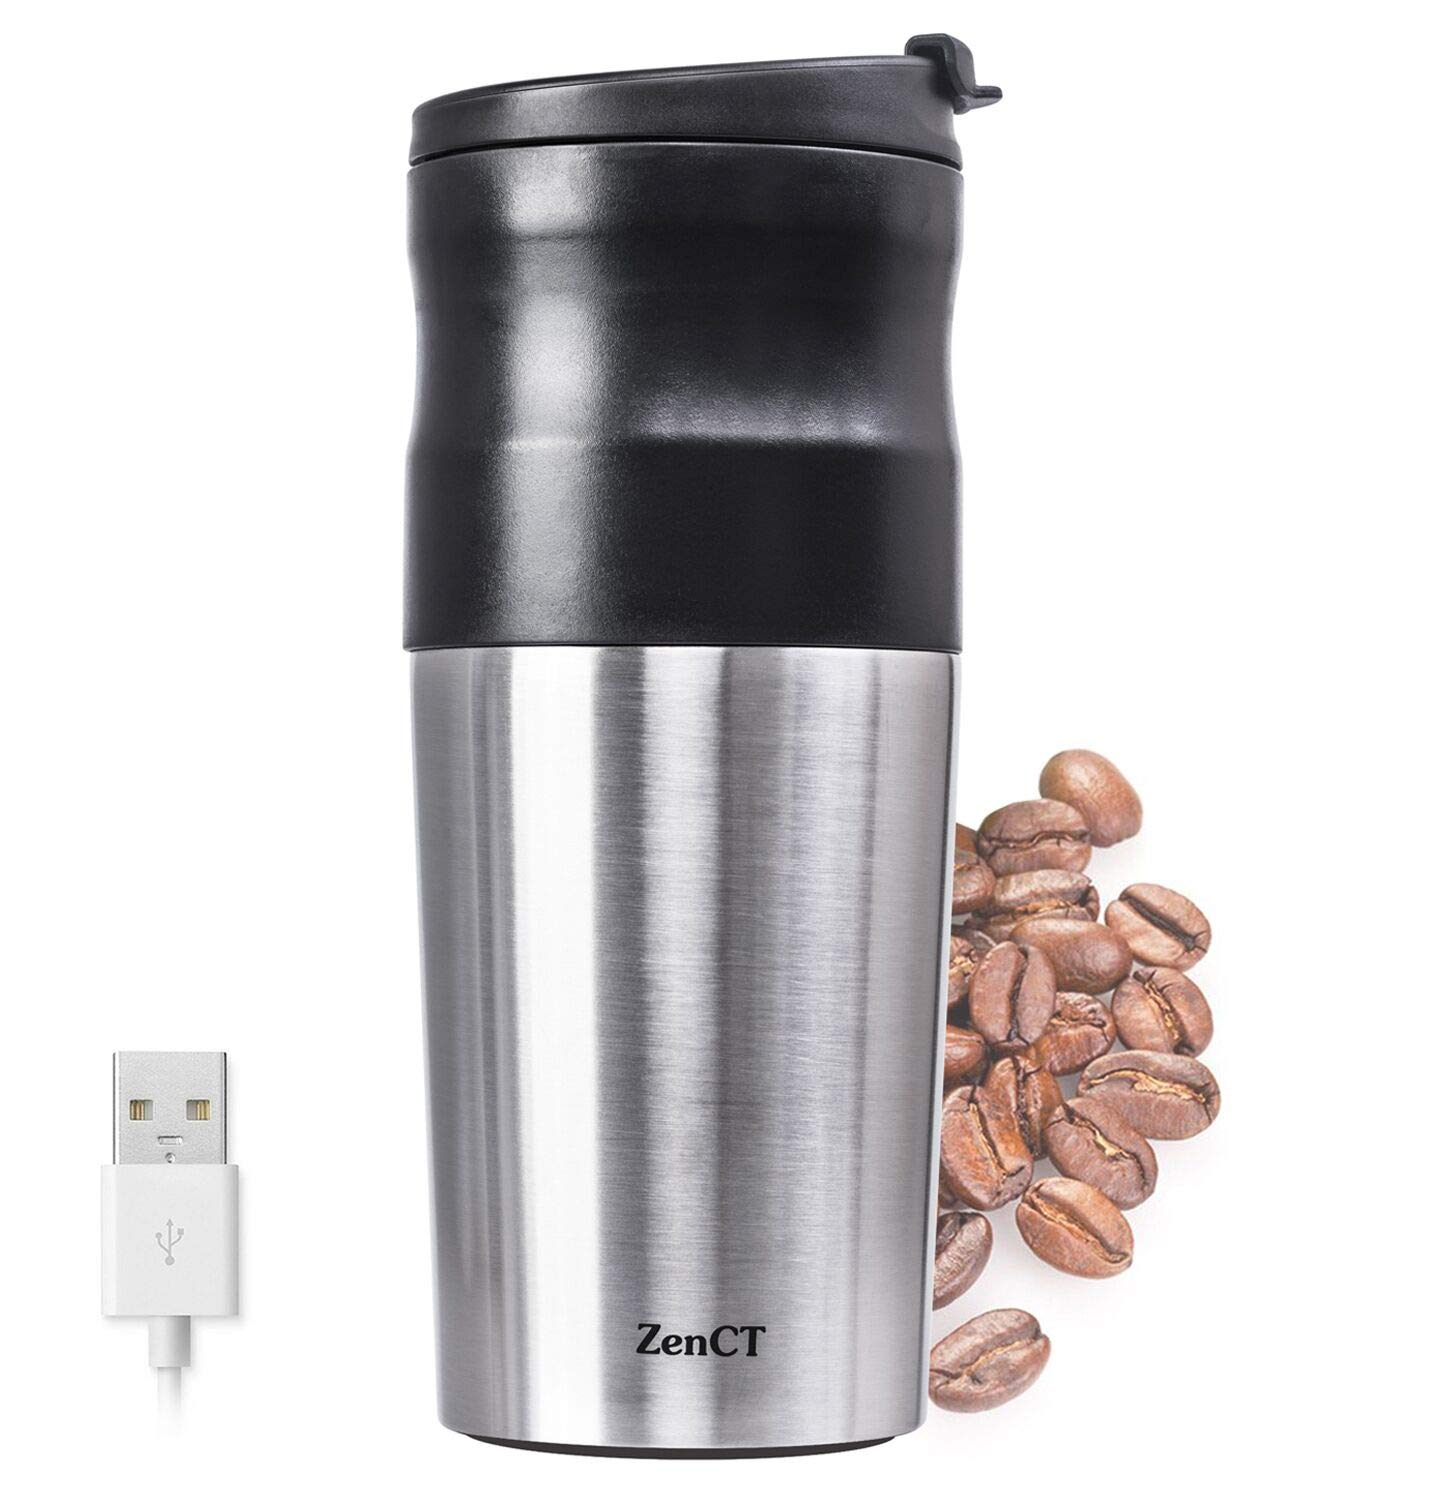 ZenCT Single Cup Coffee Maker, Grind and Brew Single Serve Includes Electric Burr Grinder USB Chargeable - Reusable Filter - 15 oz Insulated Tumbler Wanjialong